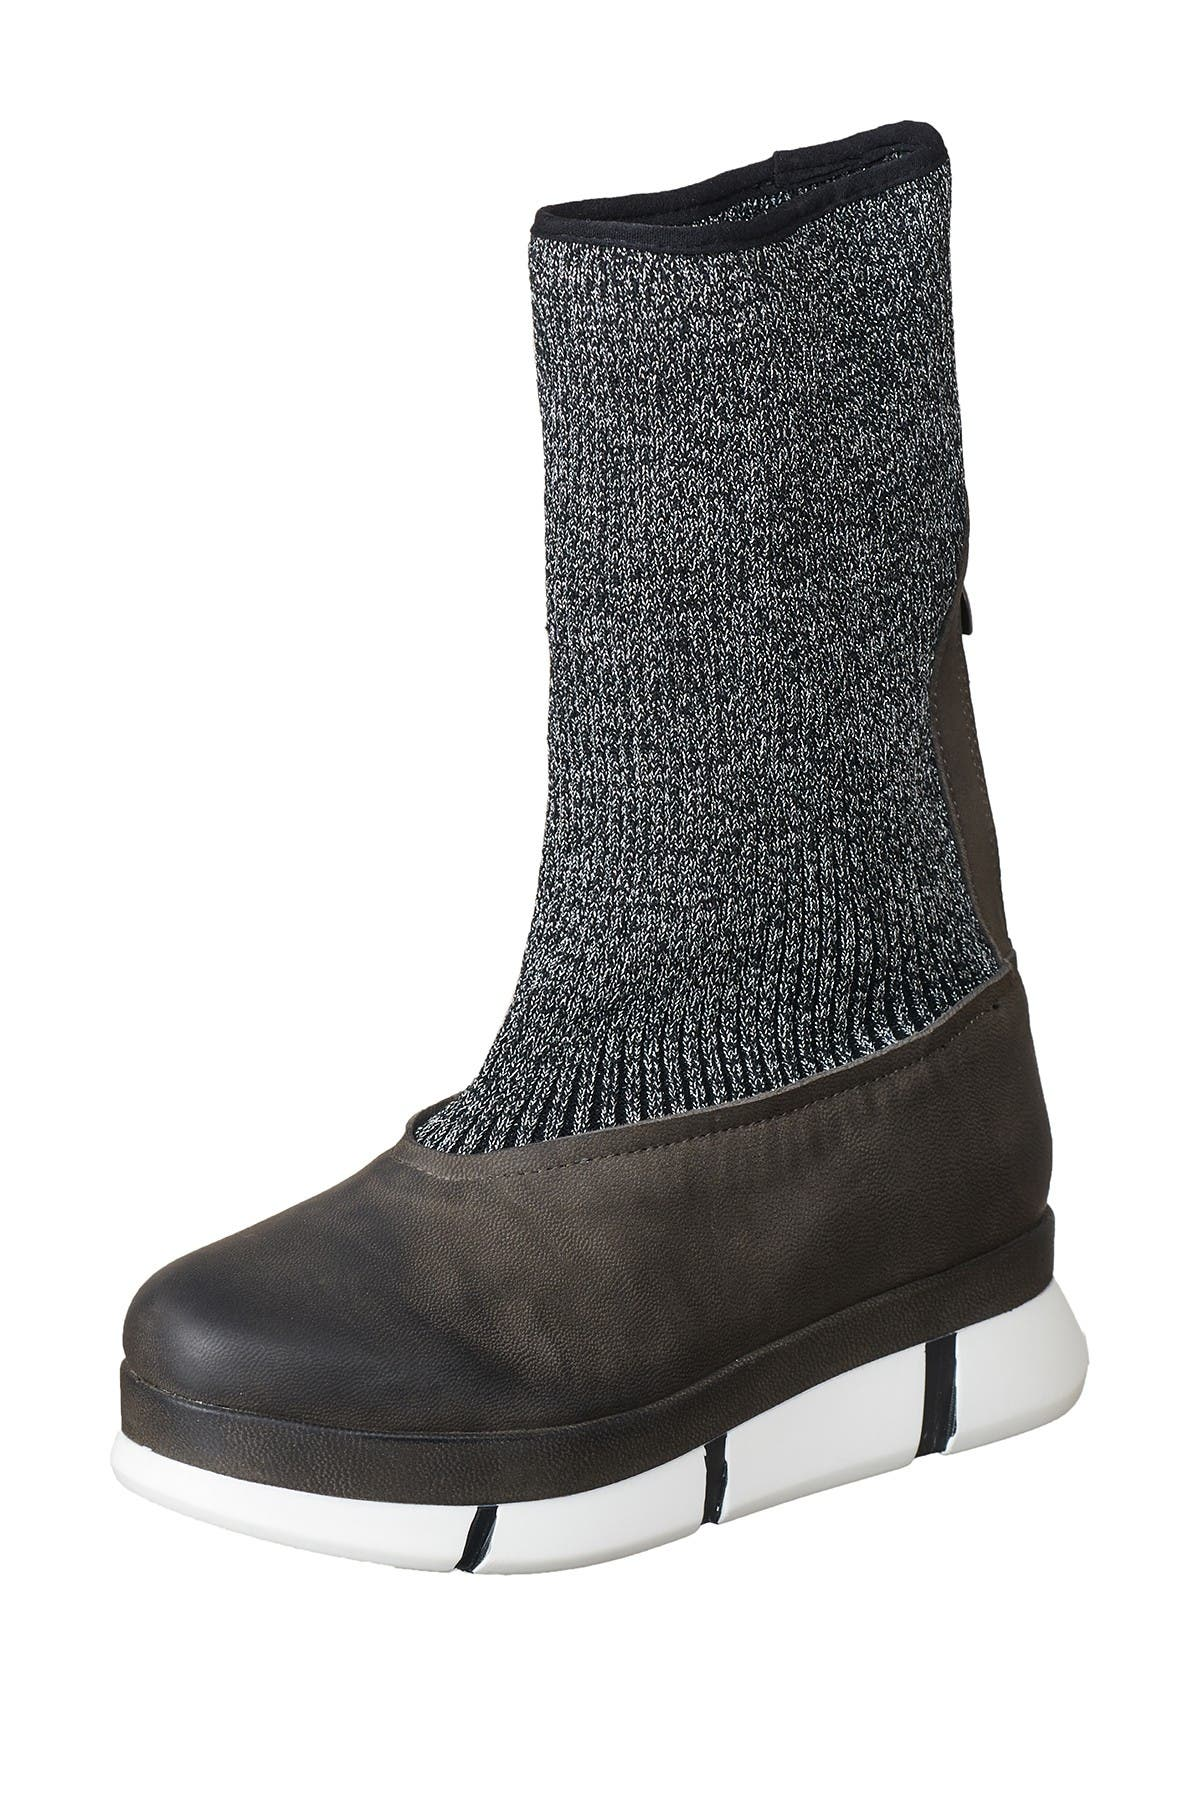 Image of Antelope Sock Knit Leather Boot